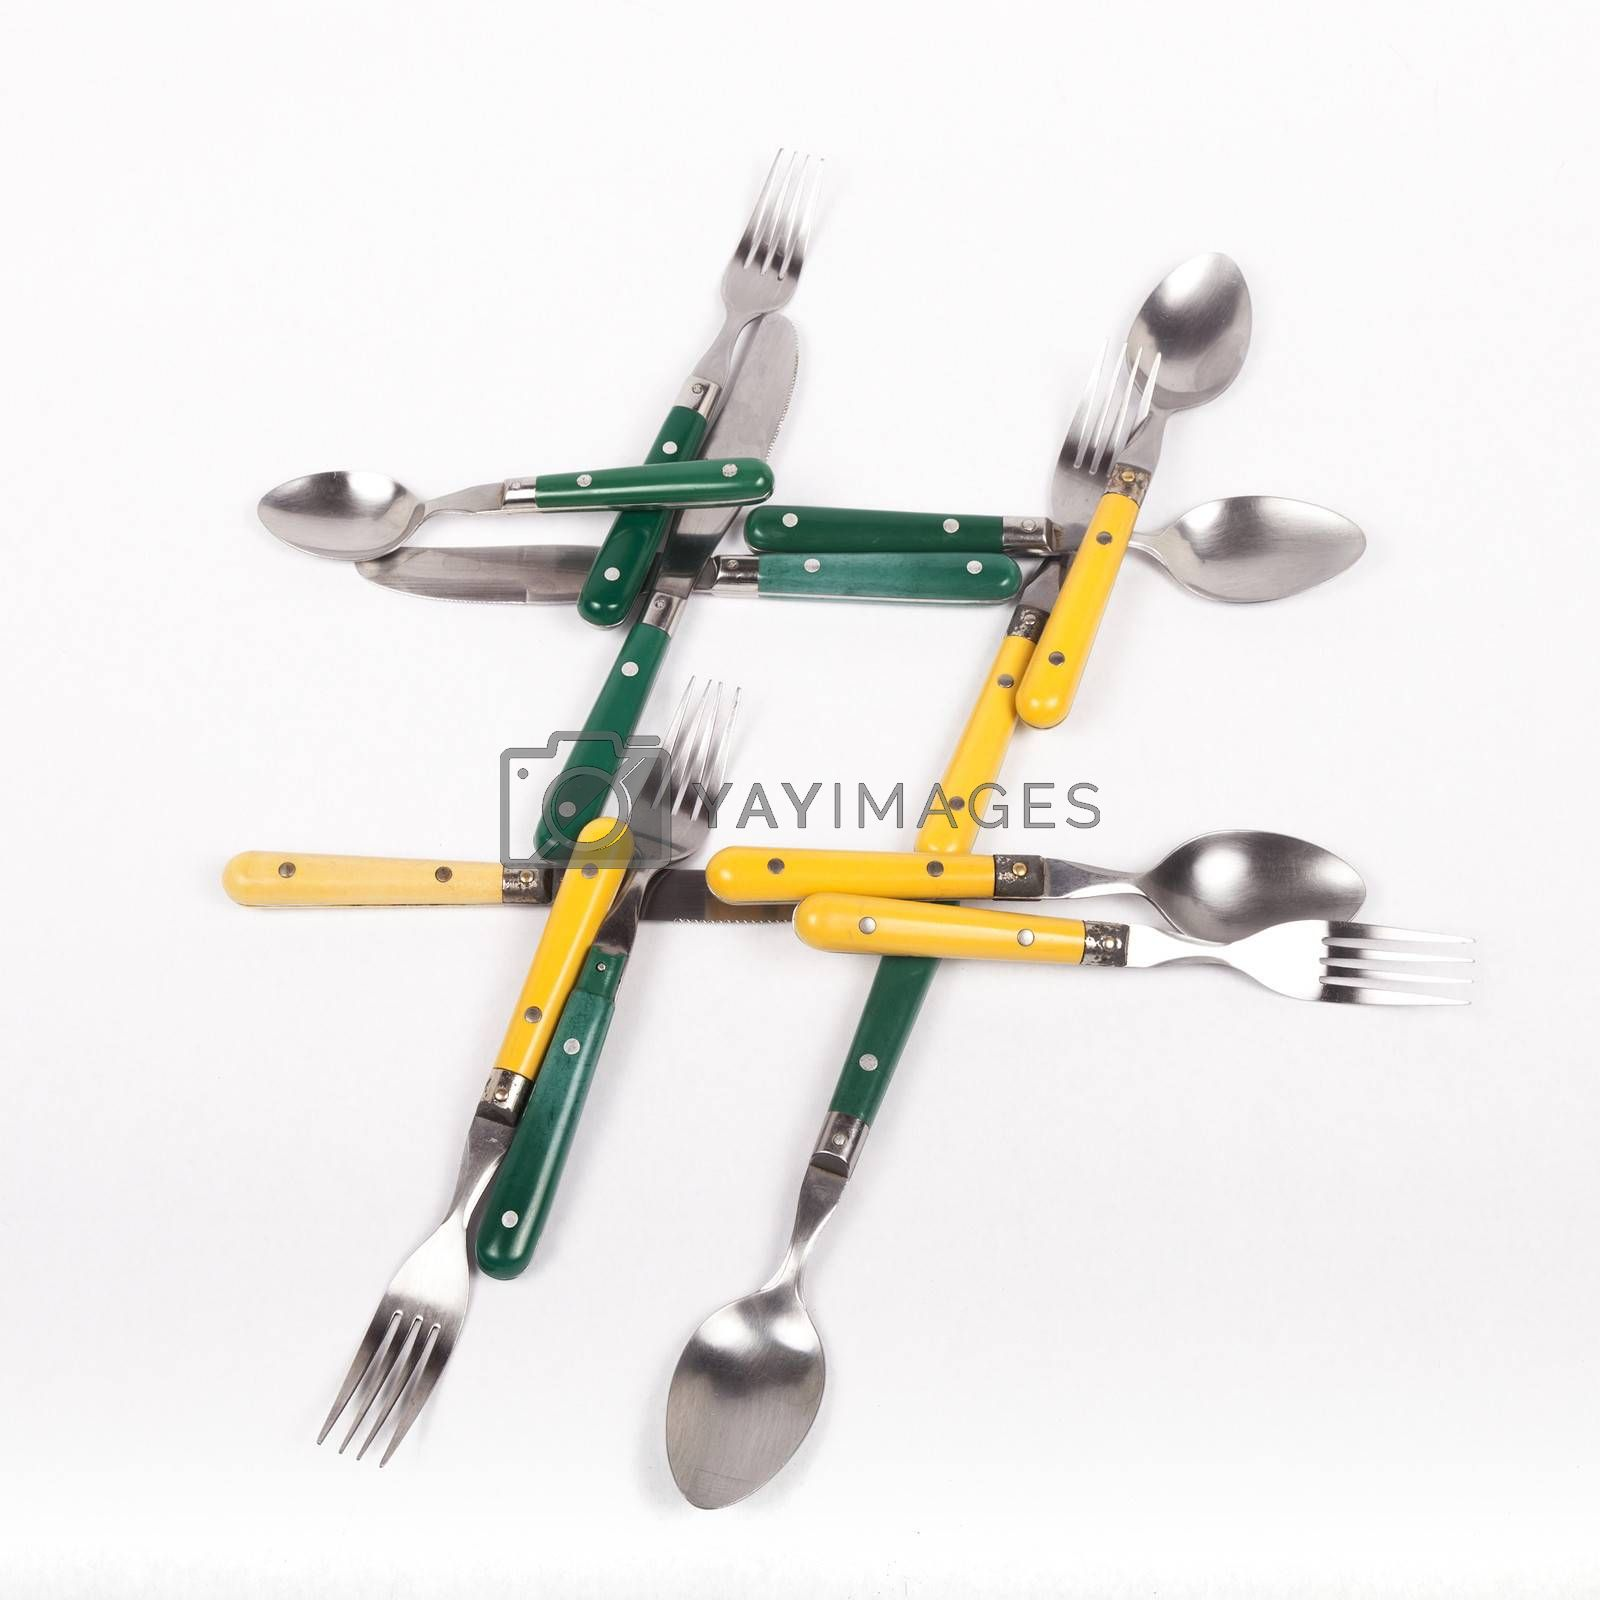 Royalty free image of Utensils Hashtag by mothy20